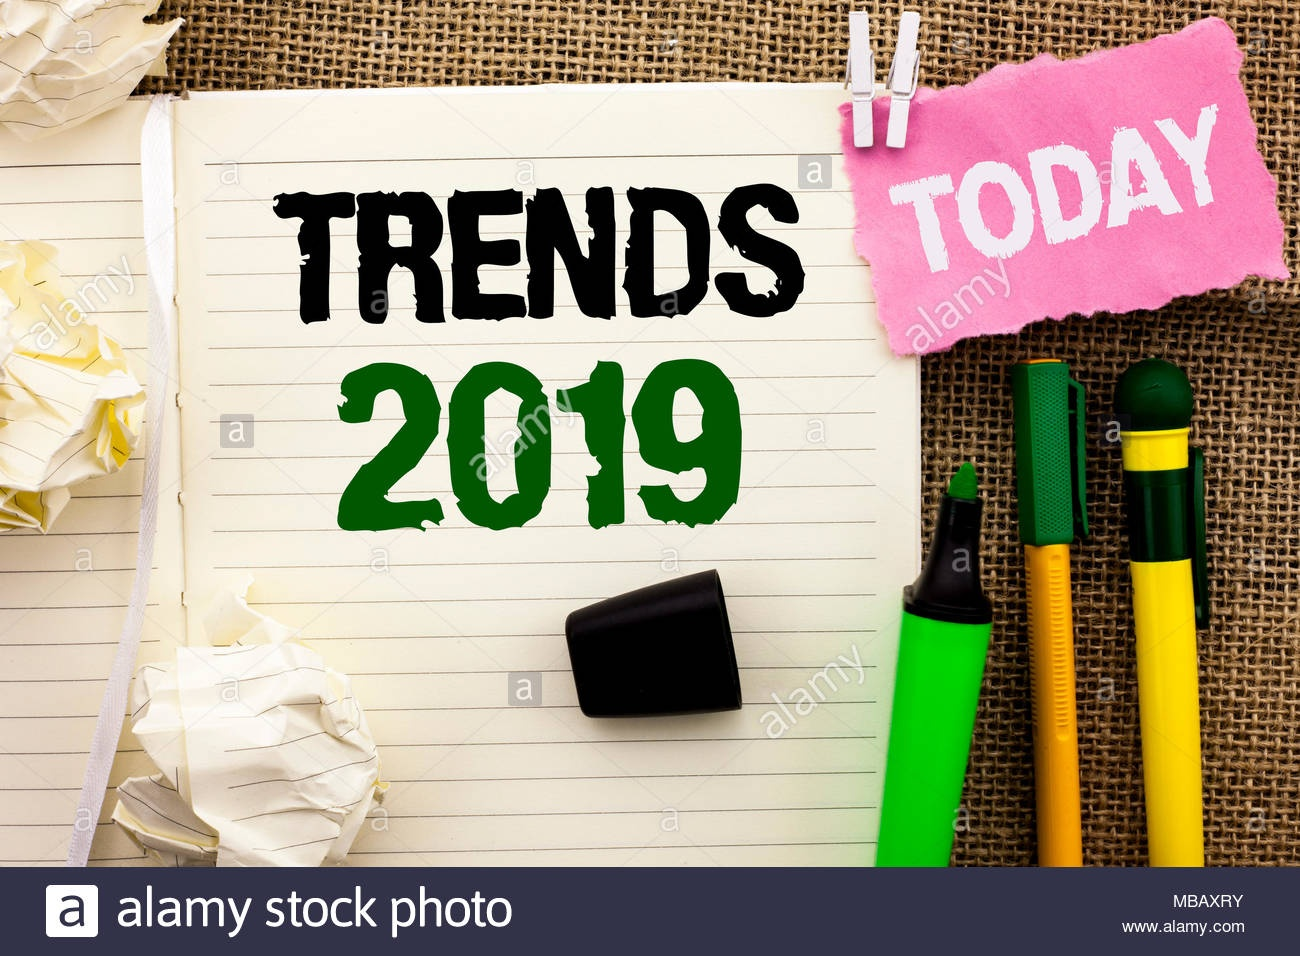 What are some of the top trends and fads in 2019? - Quora